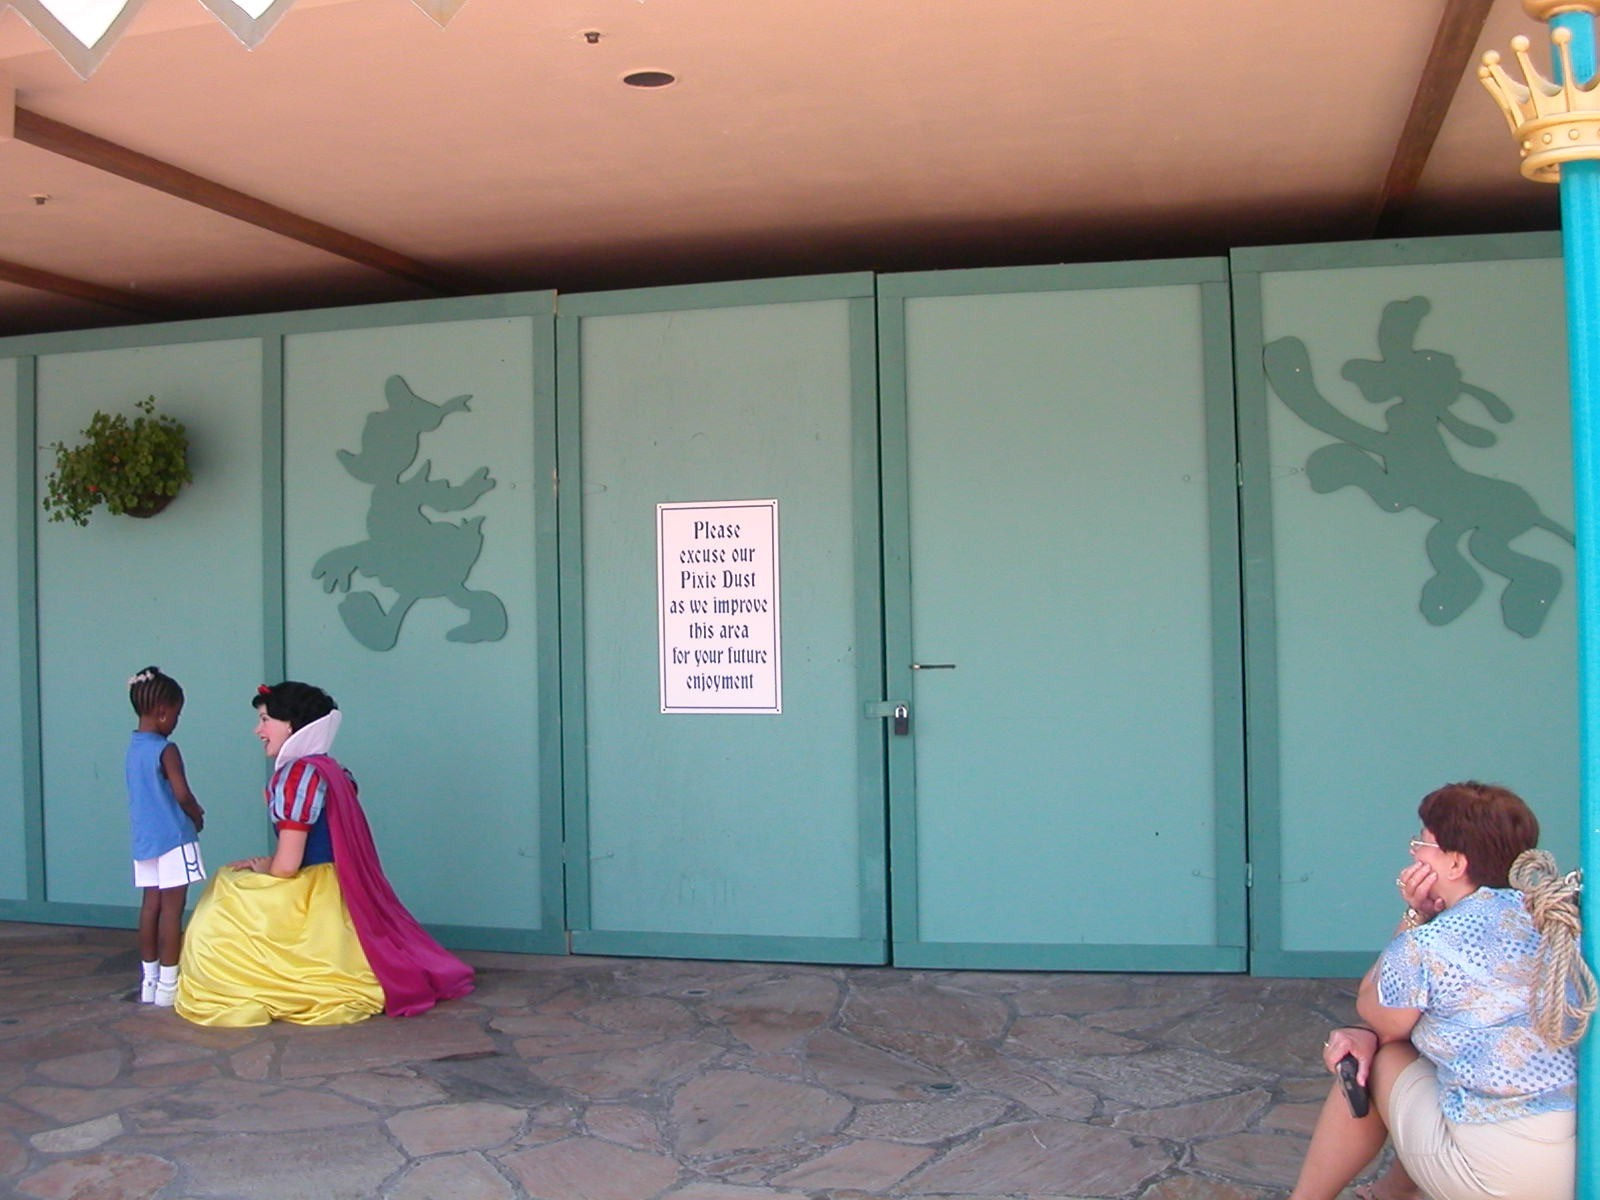 Snow White closed for refurbishment